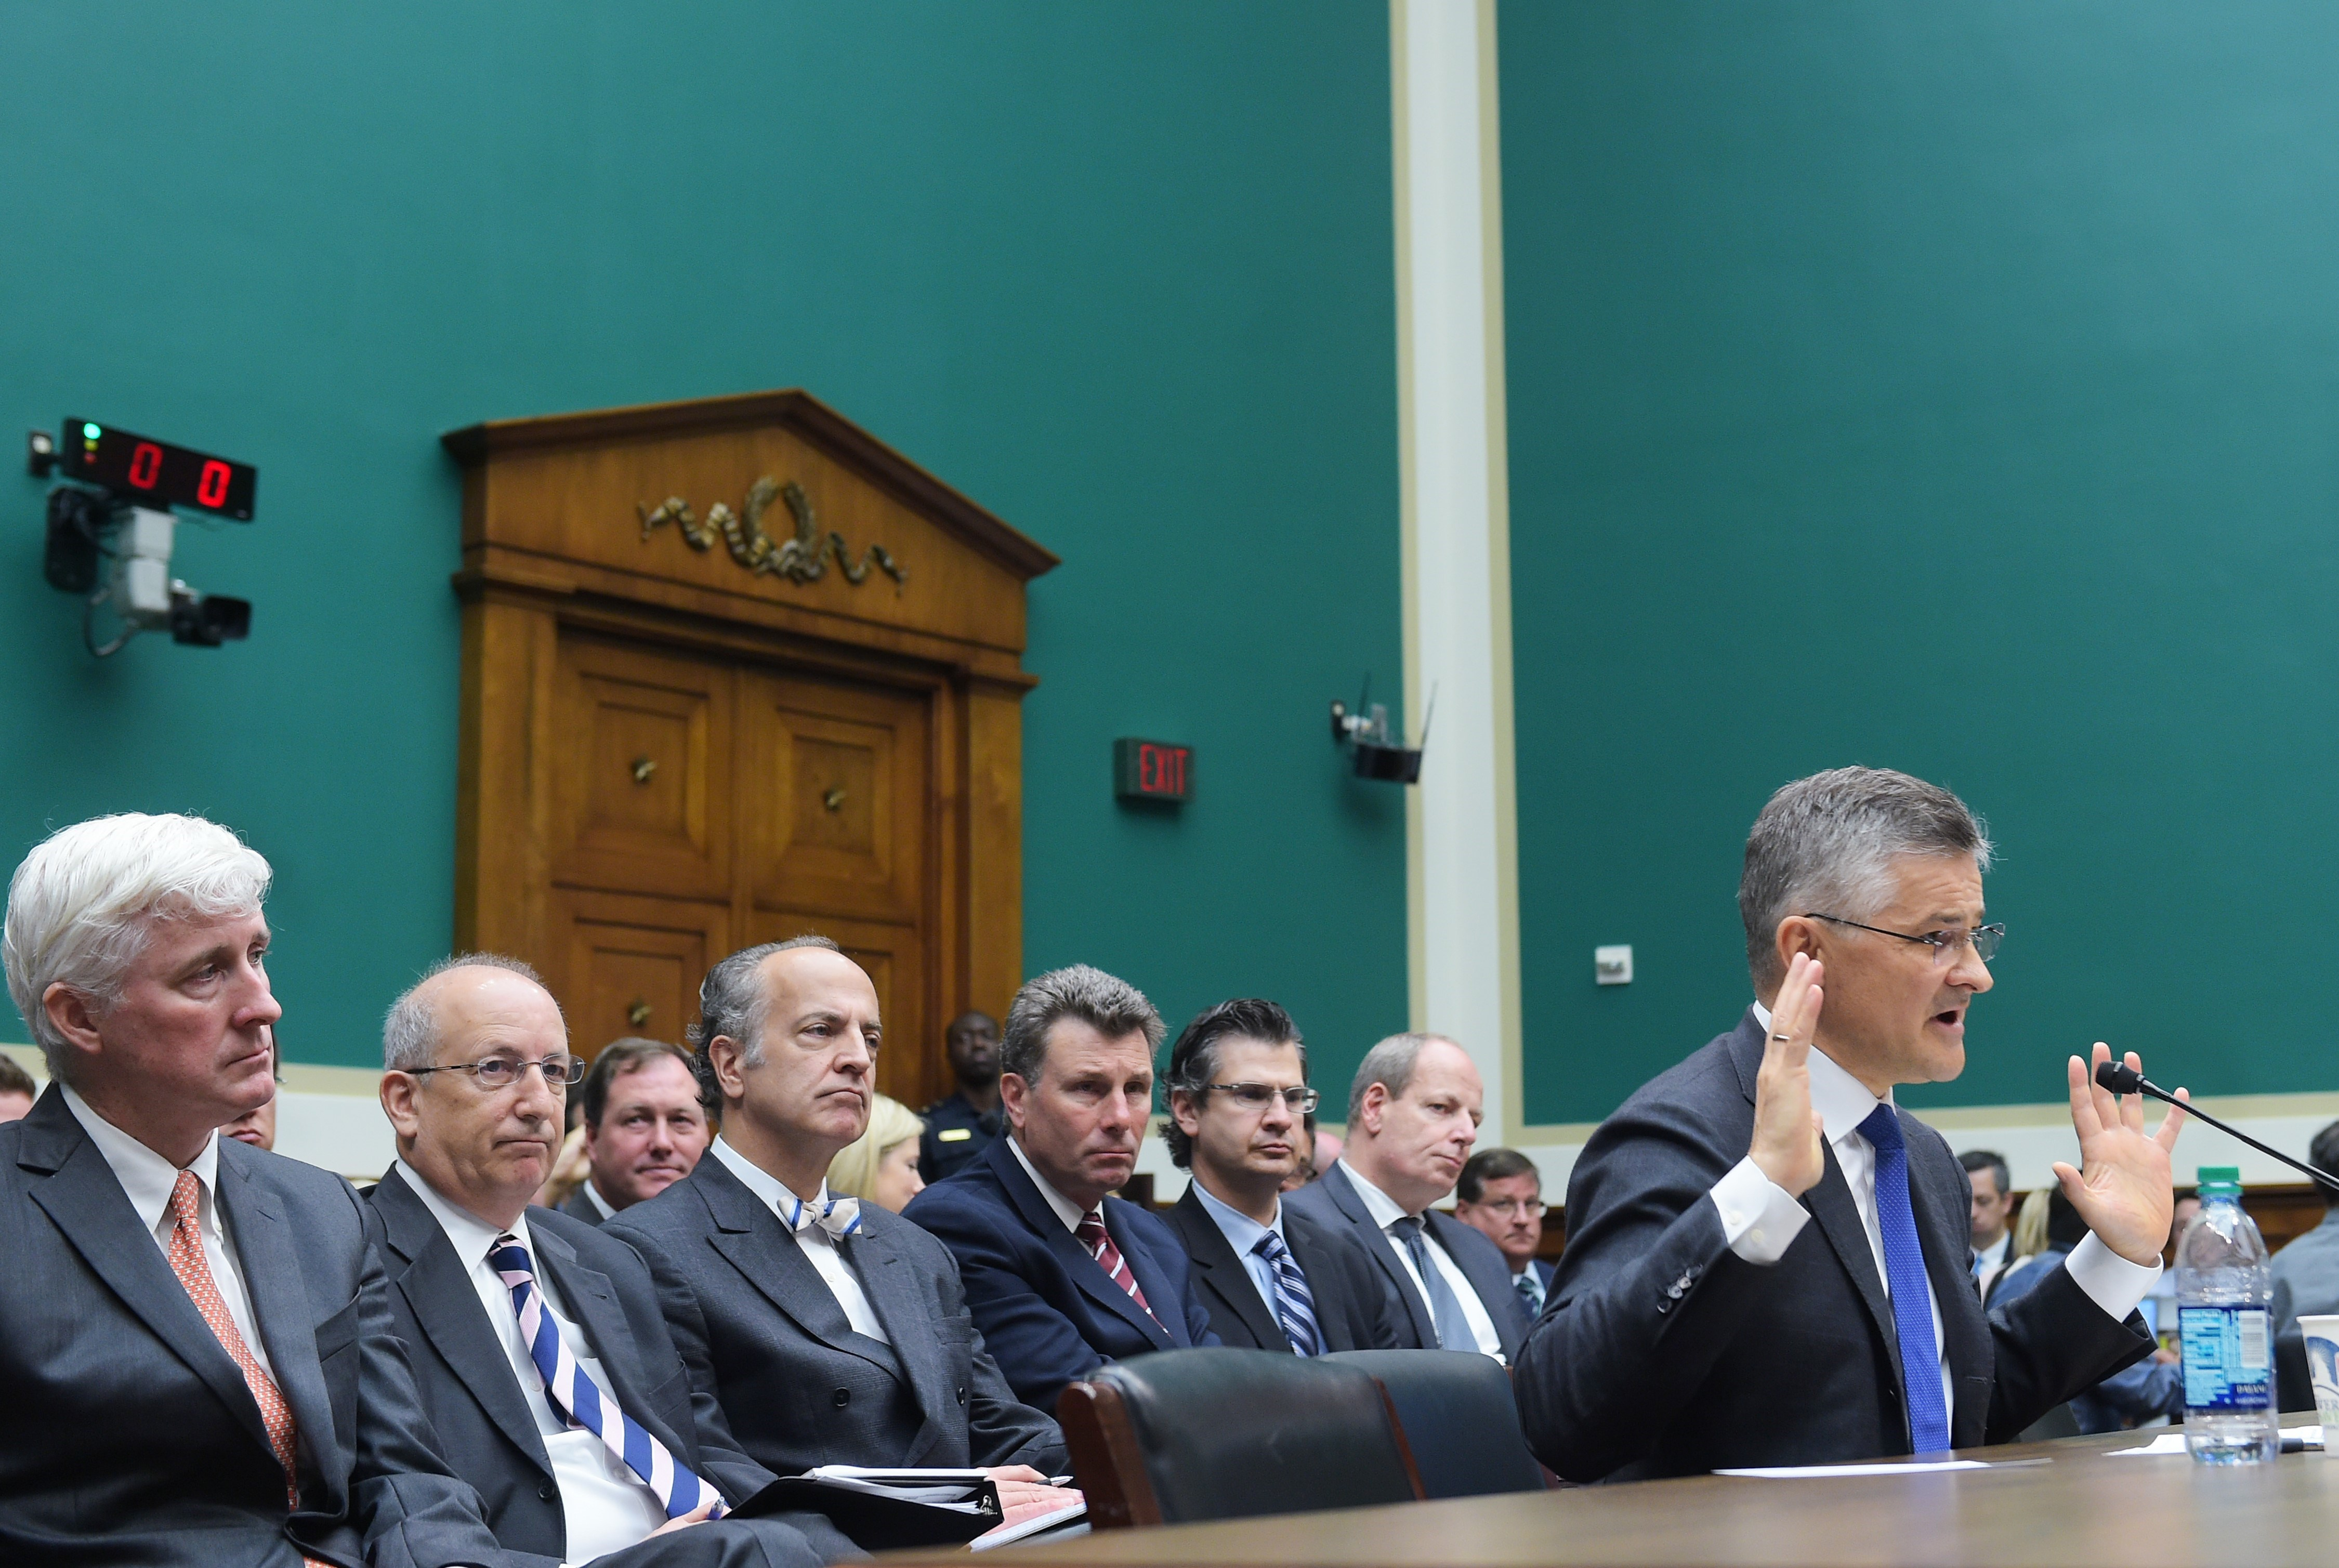 Michael Horn testifies before the House Committee on Energy and Commerce Subcommittee in the Rayburn House Office Building on Oct. 8, 2015 in Washington, DC.